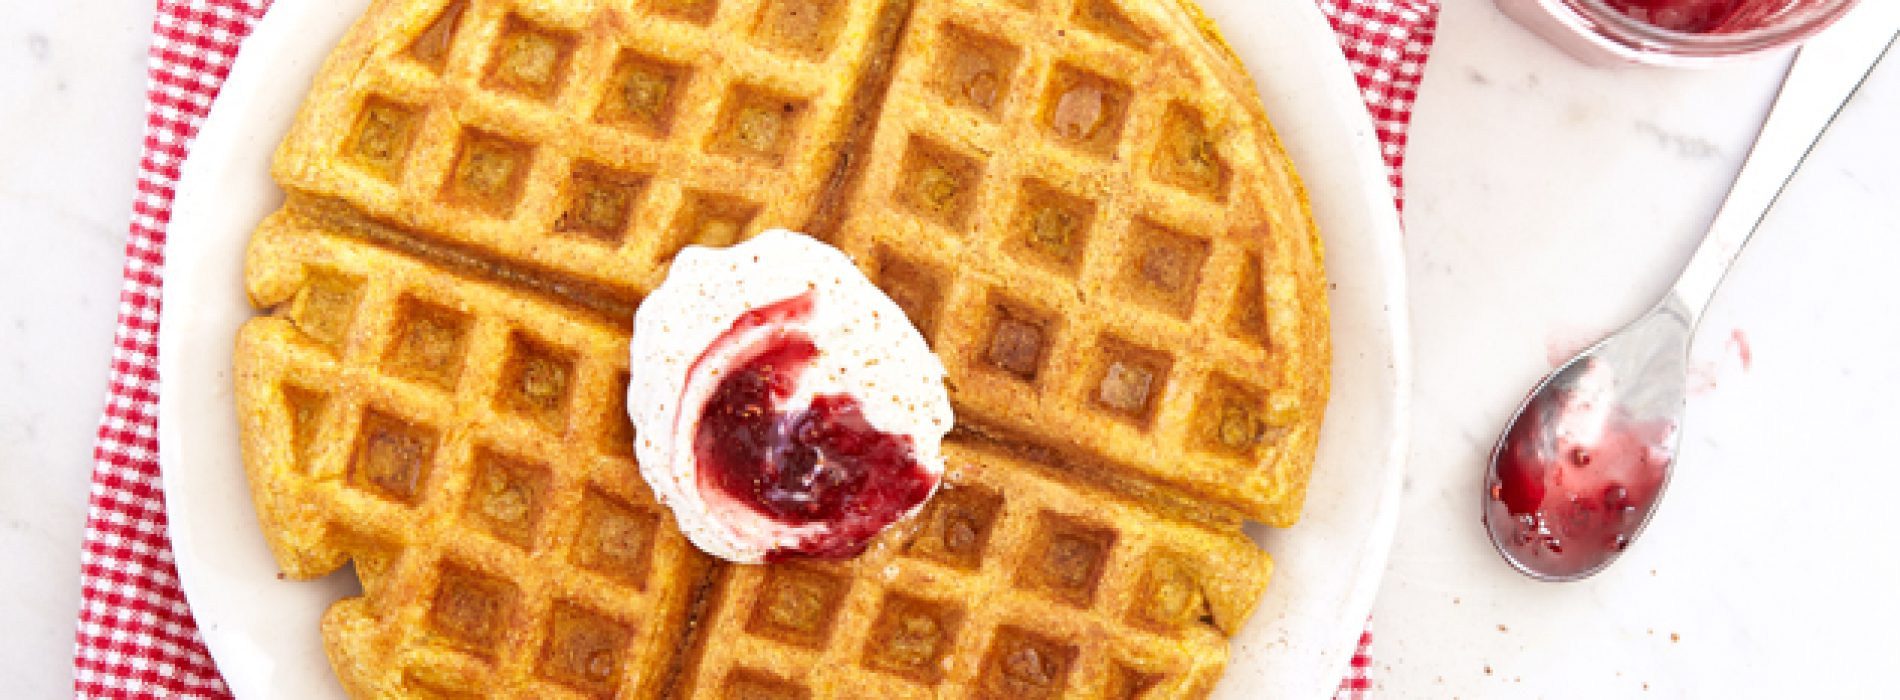 4 Ways with Waffles